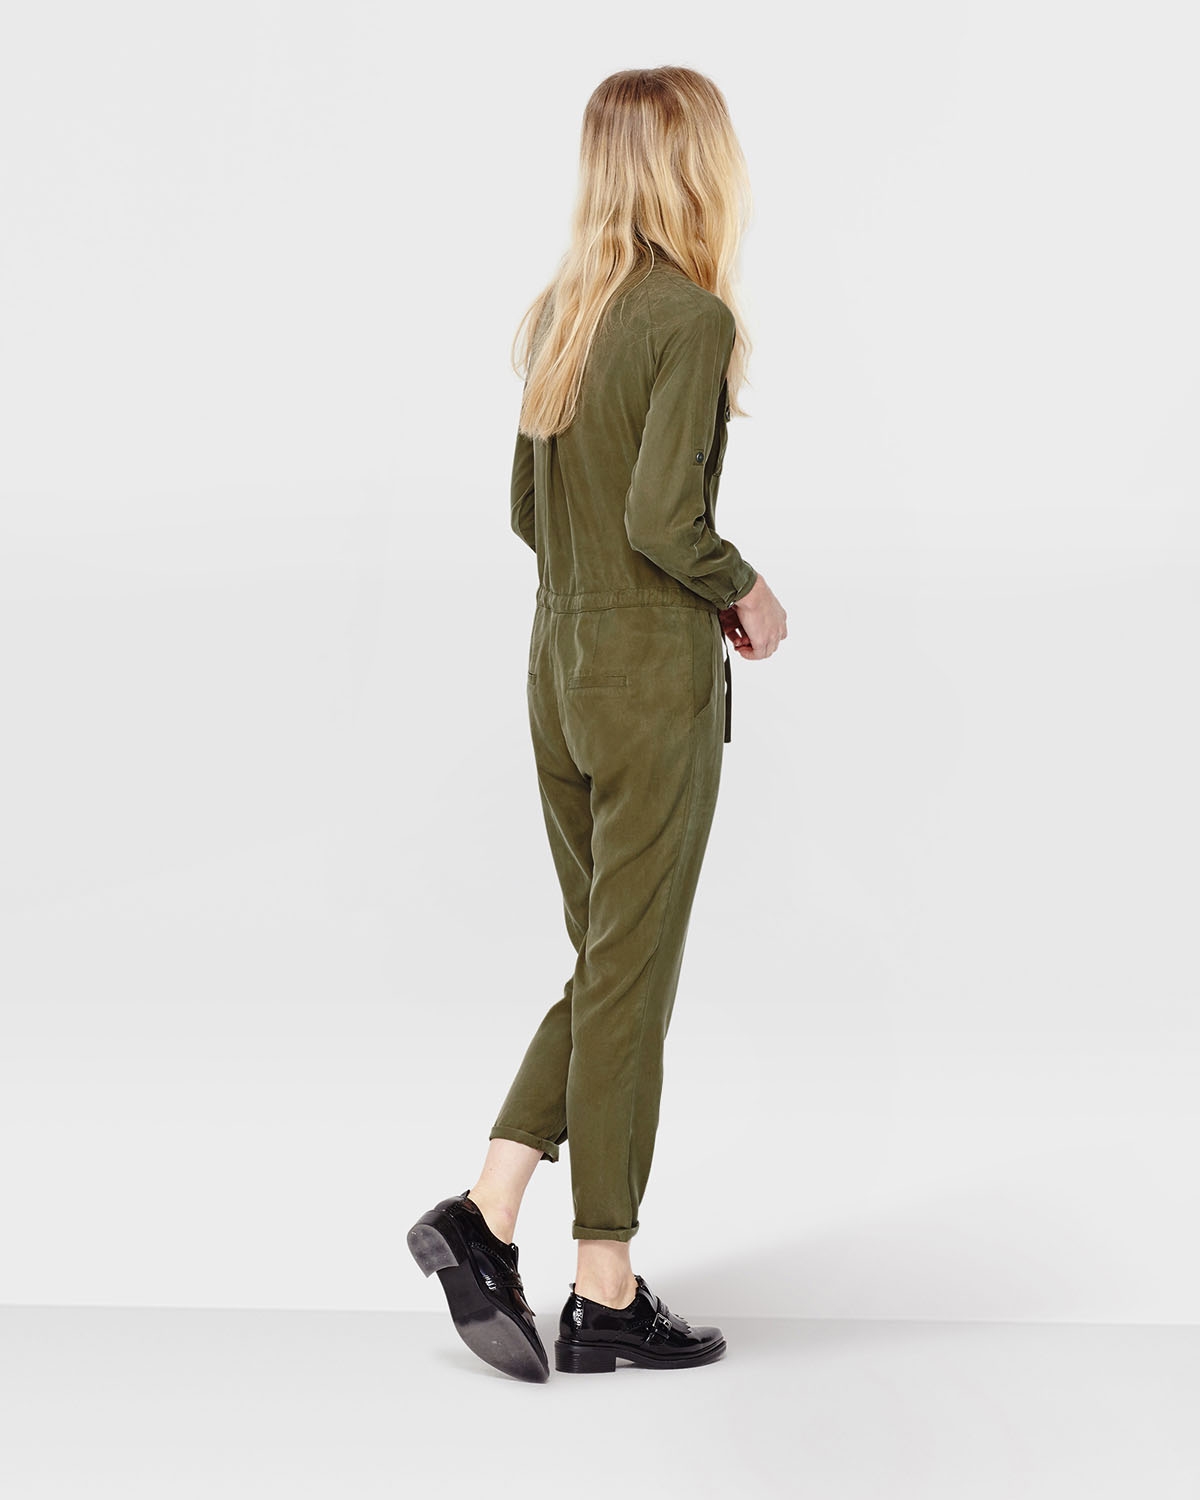 premium selection 2a9f7 6e33b DAMEN-CARGO-OVERALL | 79112697 - WE Fashion